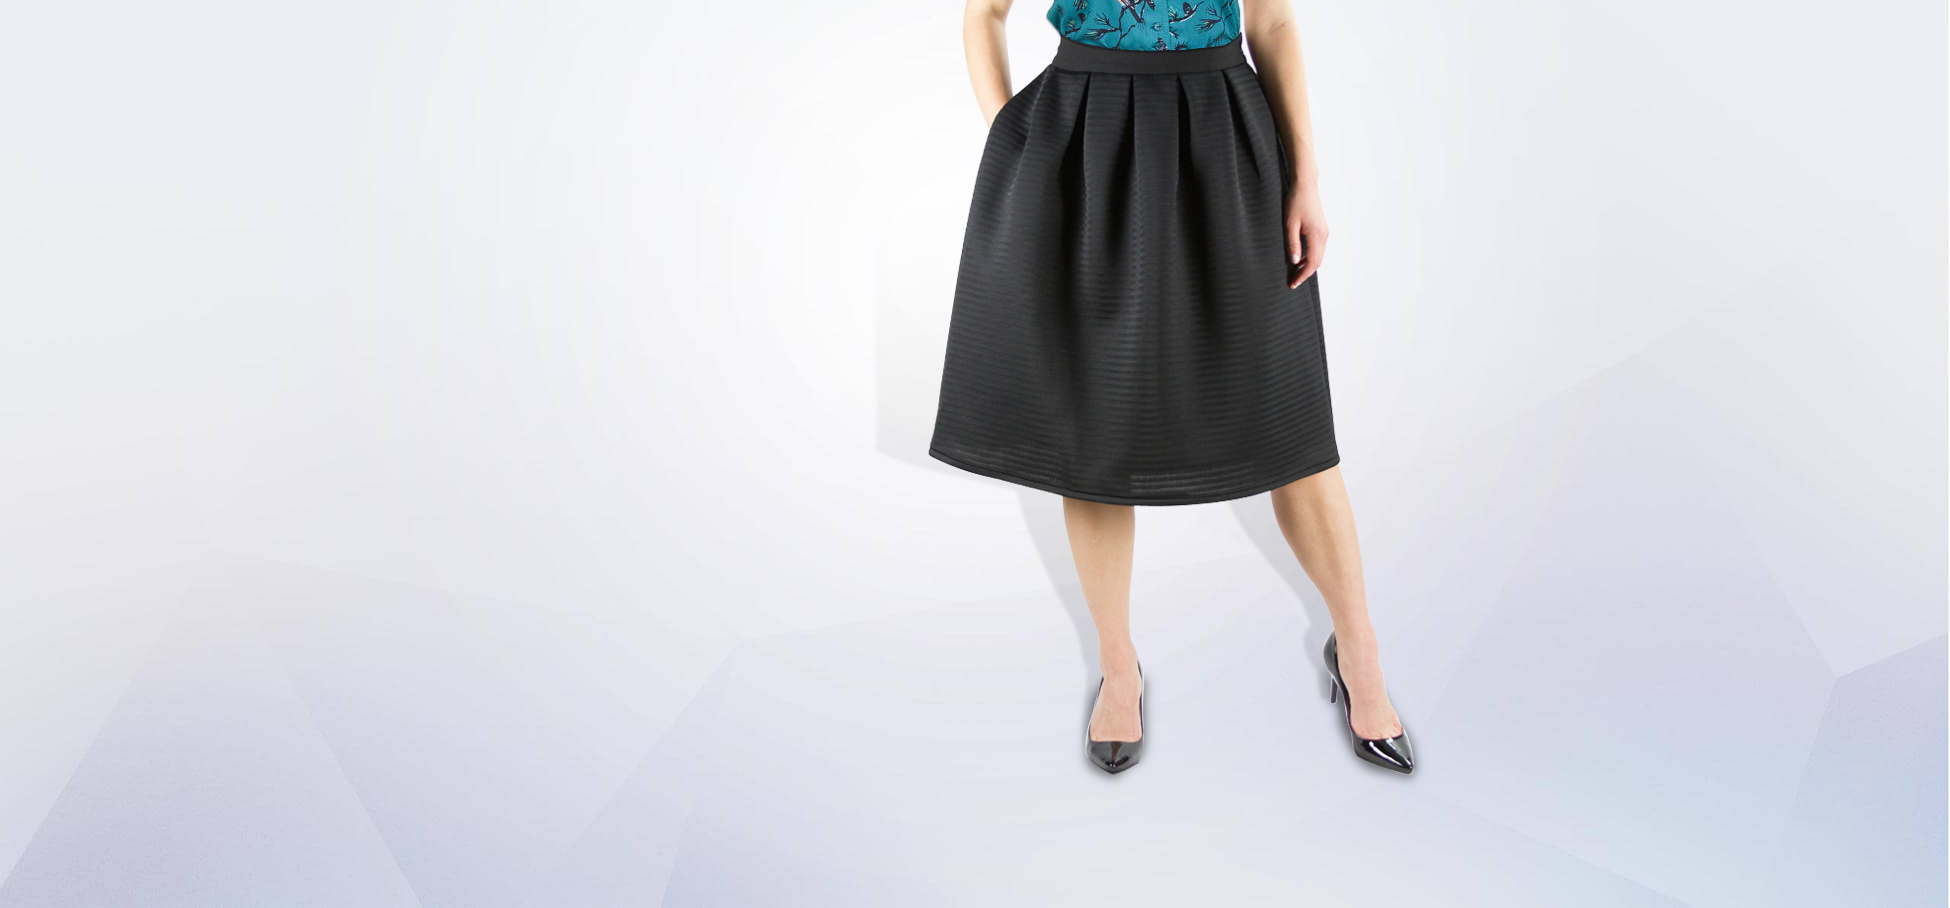 Shop – Pocket Passionista – Skirt with Pockets